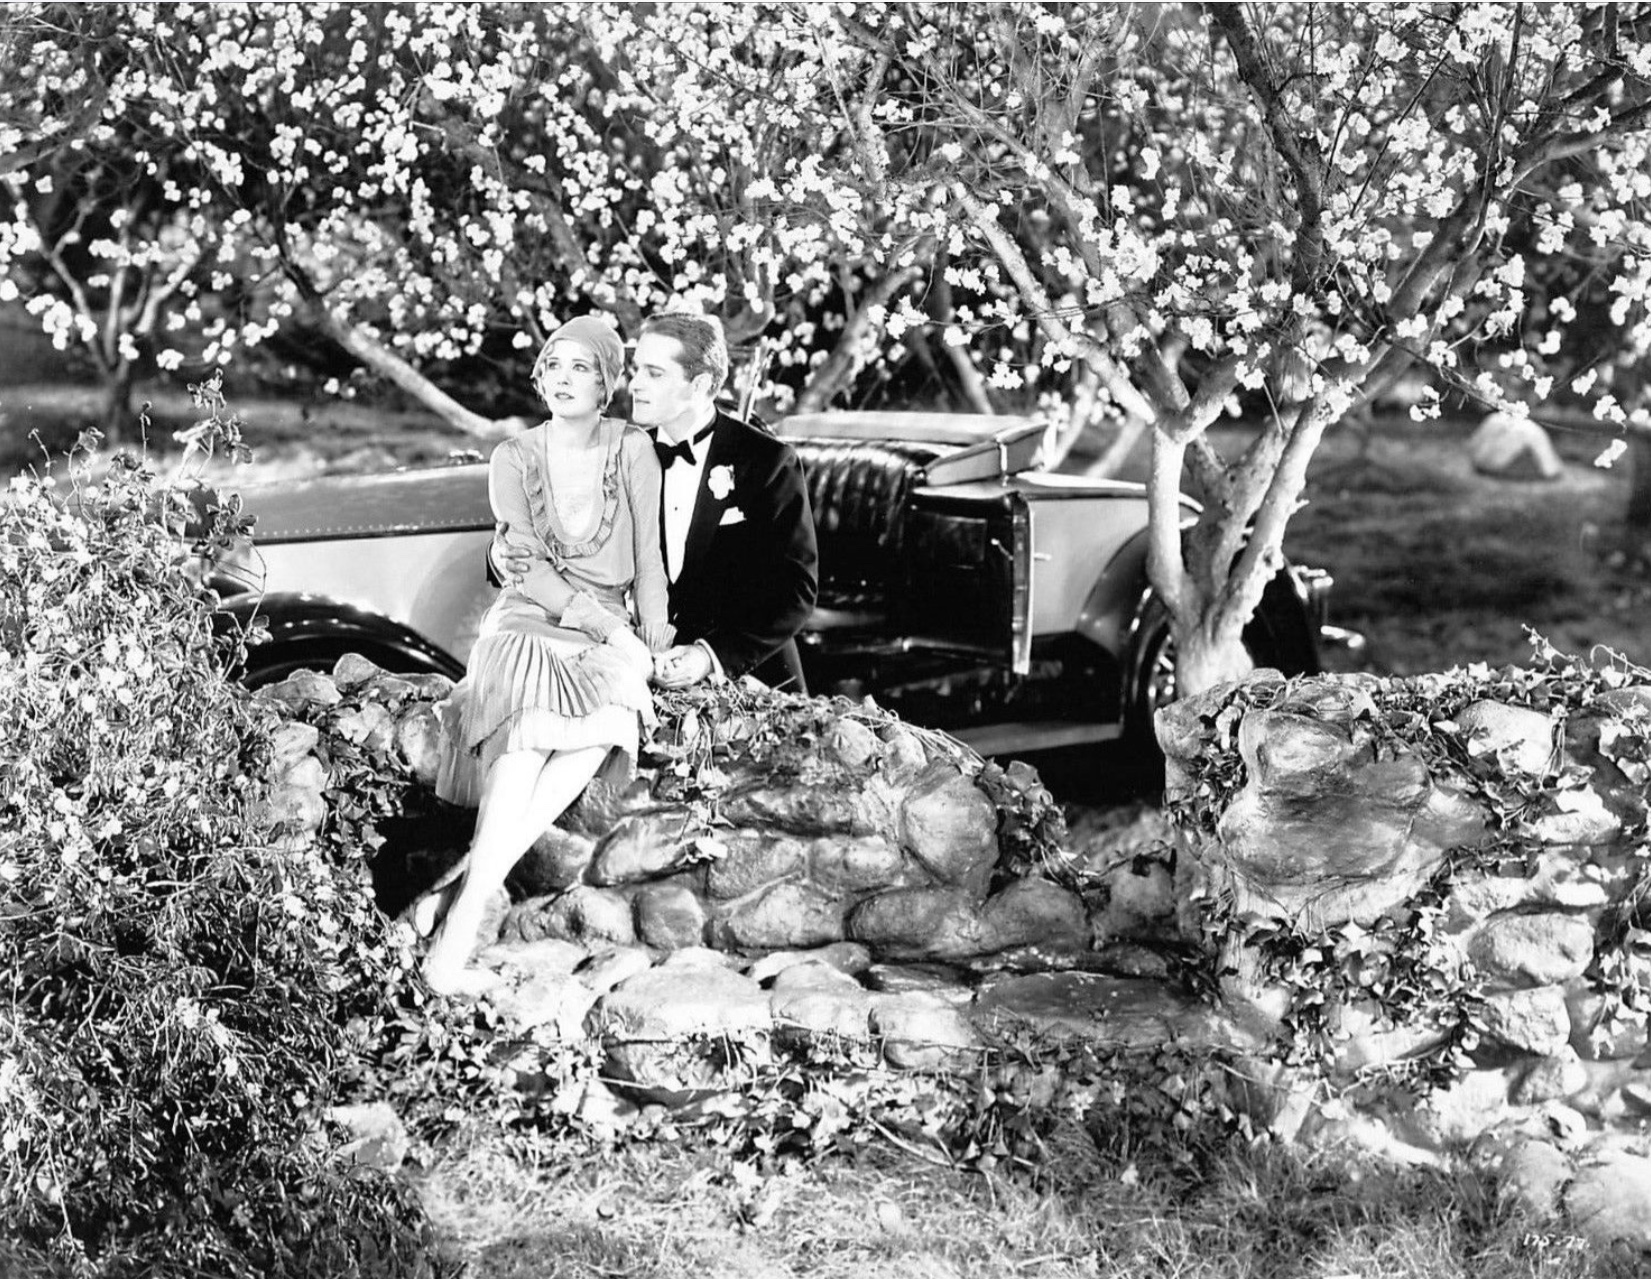 Alexander Gray and Marilyn Miller in Sally (1929)